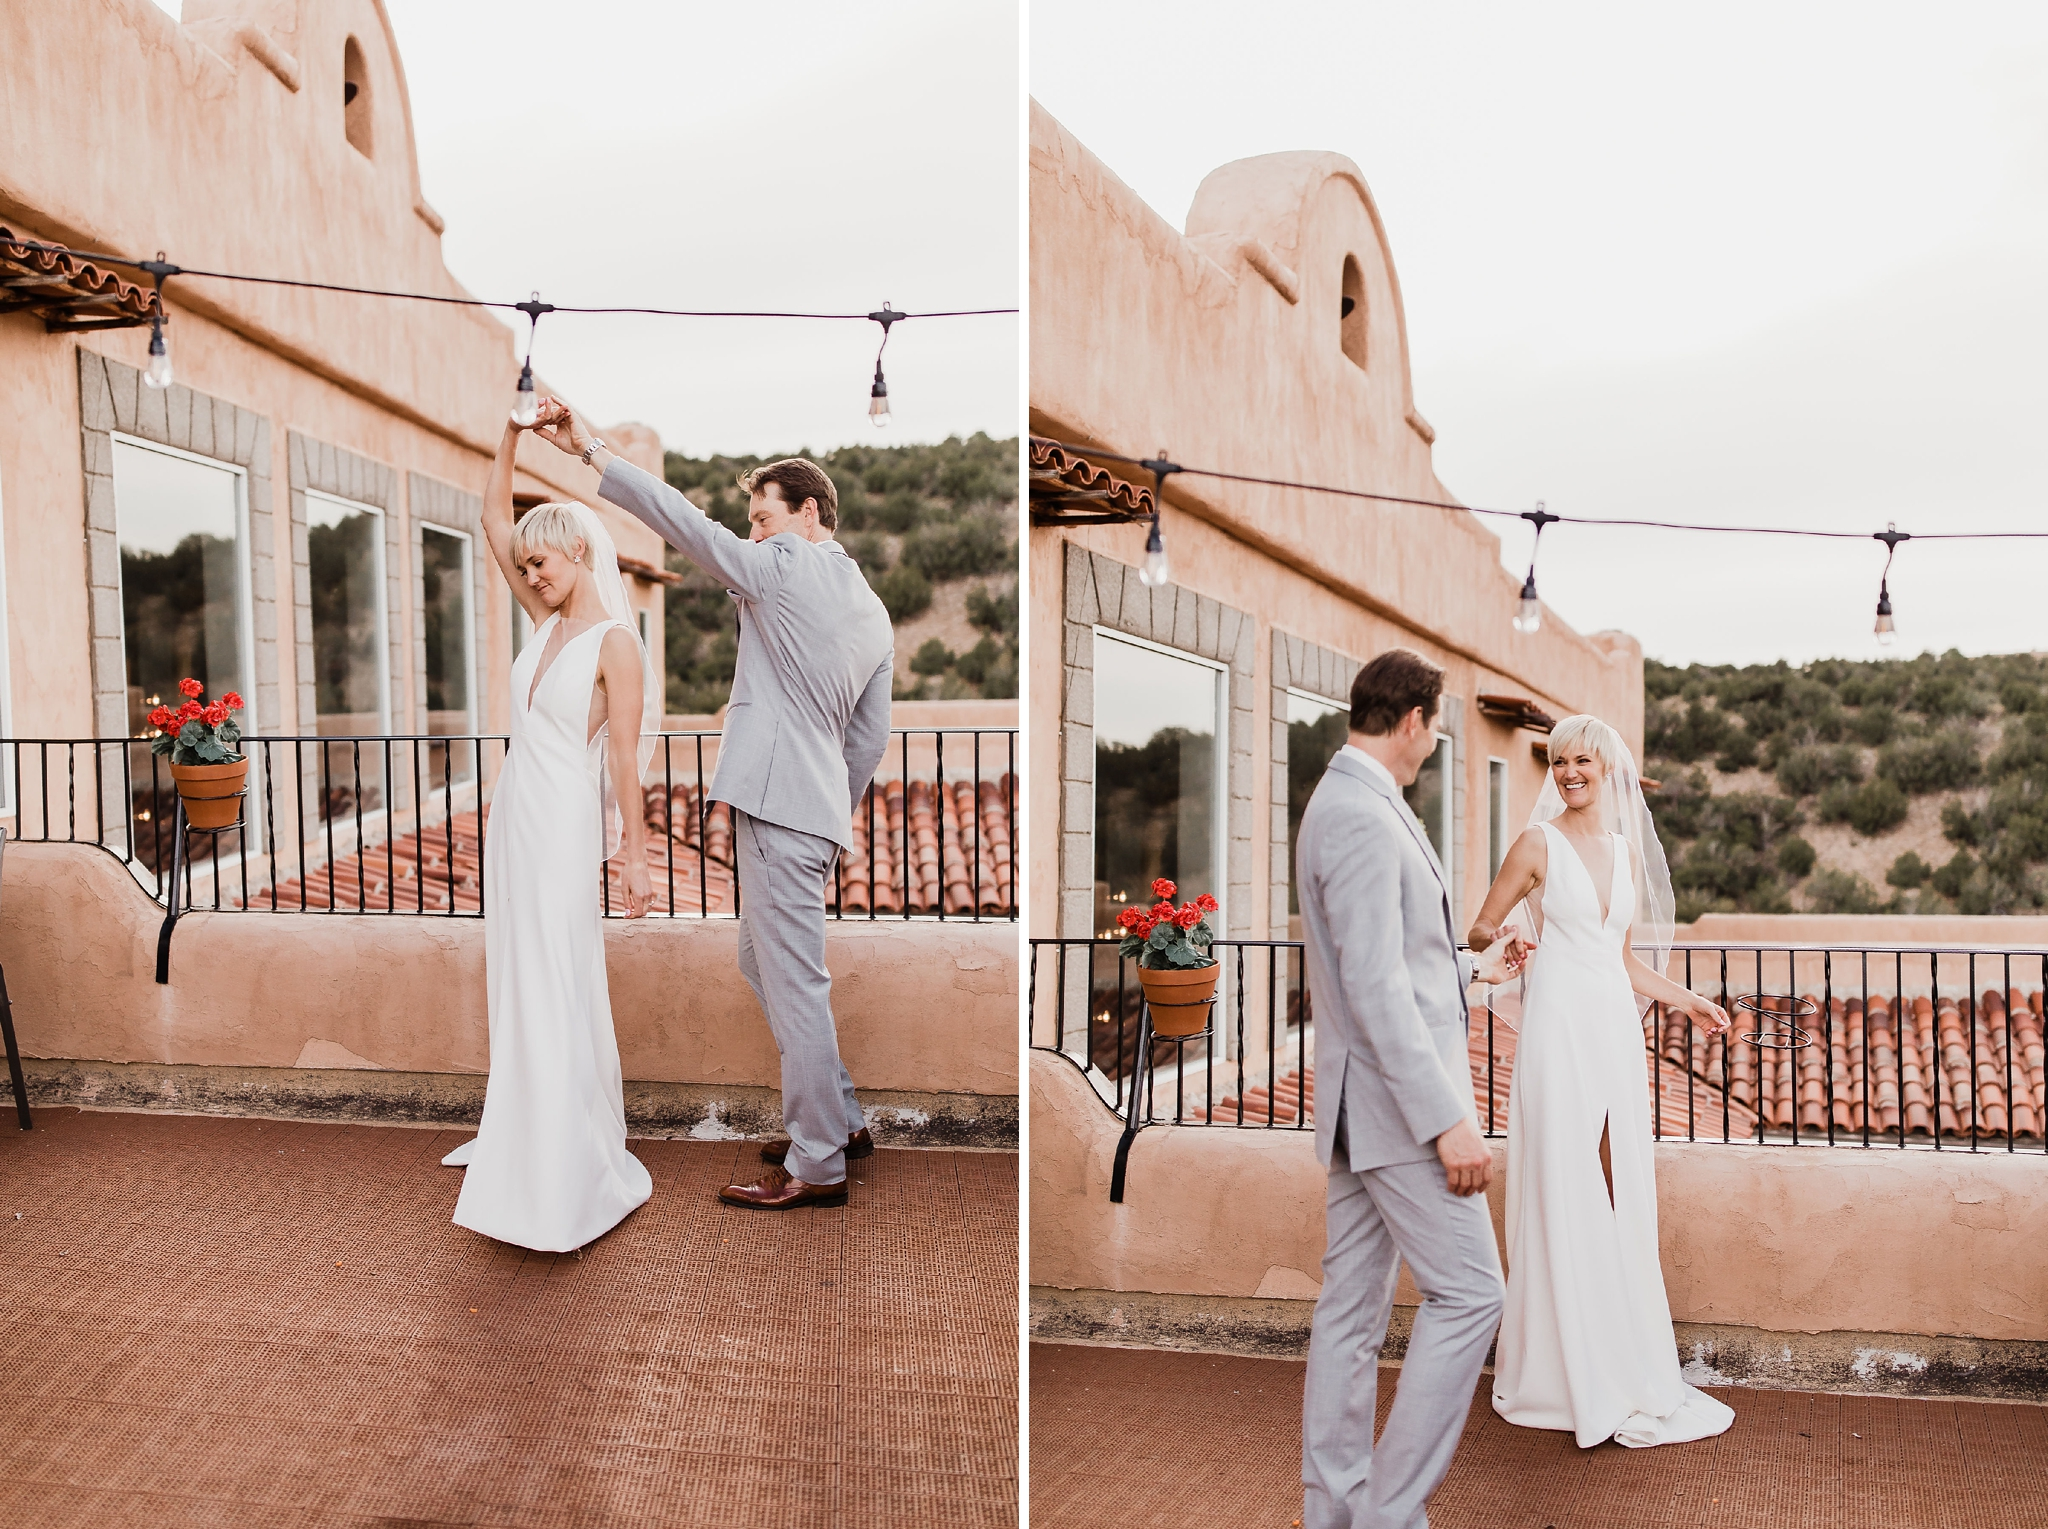 Alicia+lucia+photography+-+albuquerque+wedding+photographer+-+santa+fe+wedding+photography+-+new+mexico+wedding+photographer+-+new+mexico+wedding+-+wedding+makeup+-+makeup+artist+-+wedding+makeup+artist+-+bridal+makeup_0019.jpg